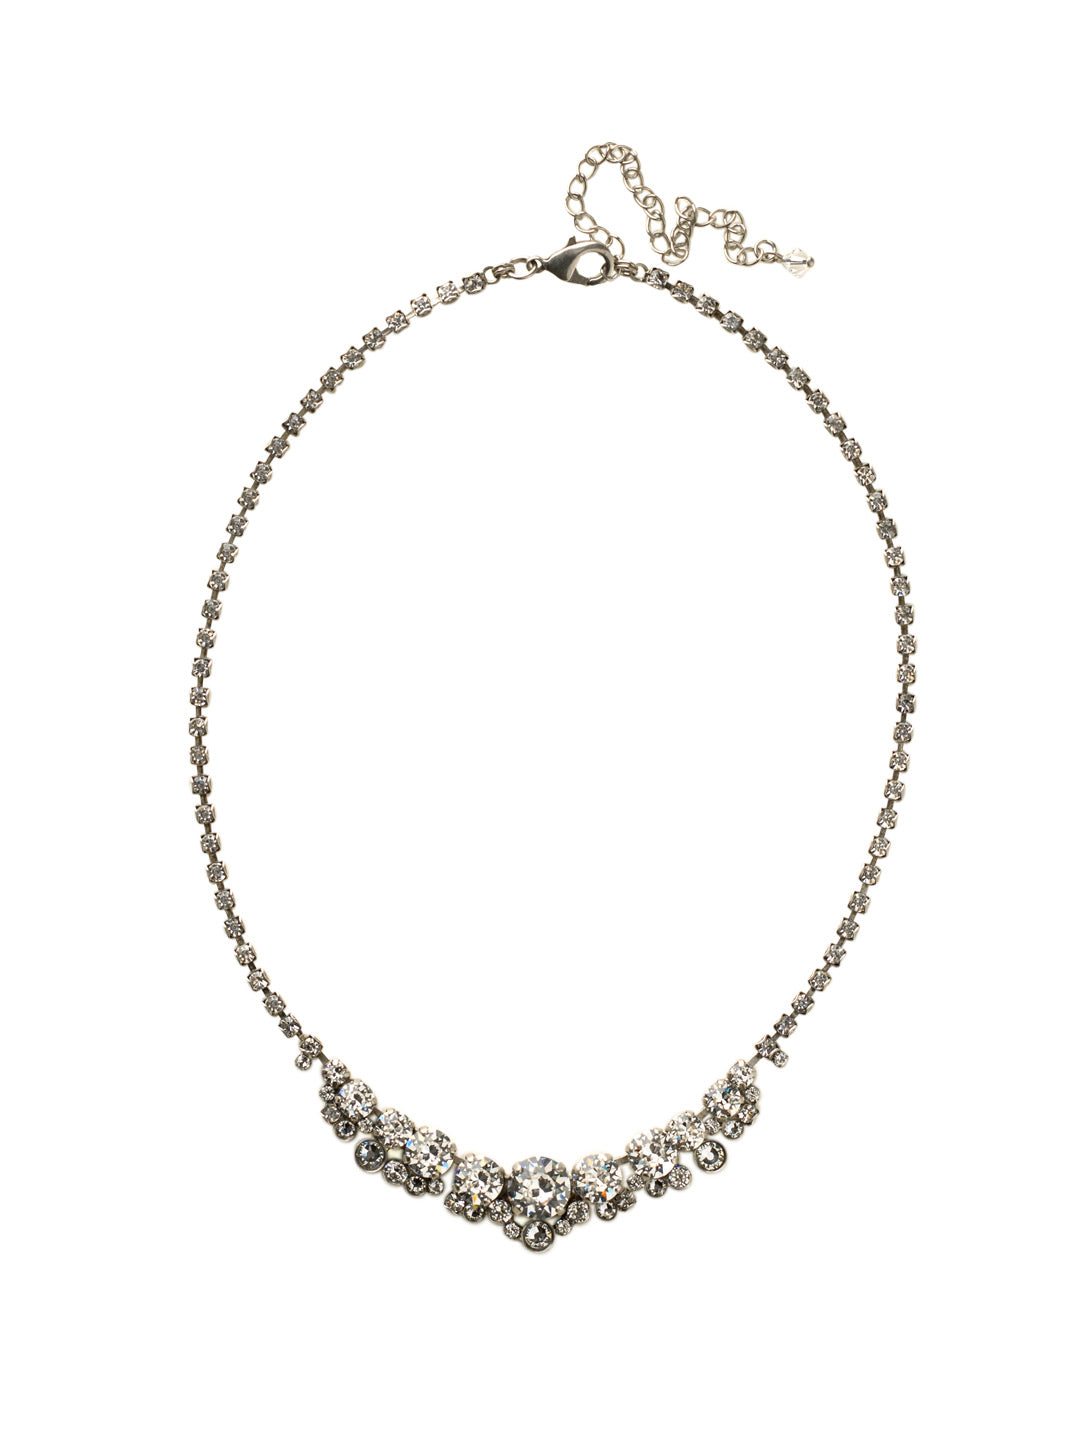 Multi-cut Round Crystal Cluster Line Necklace - NCW11ASCRY